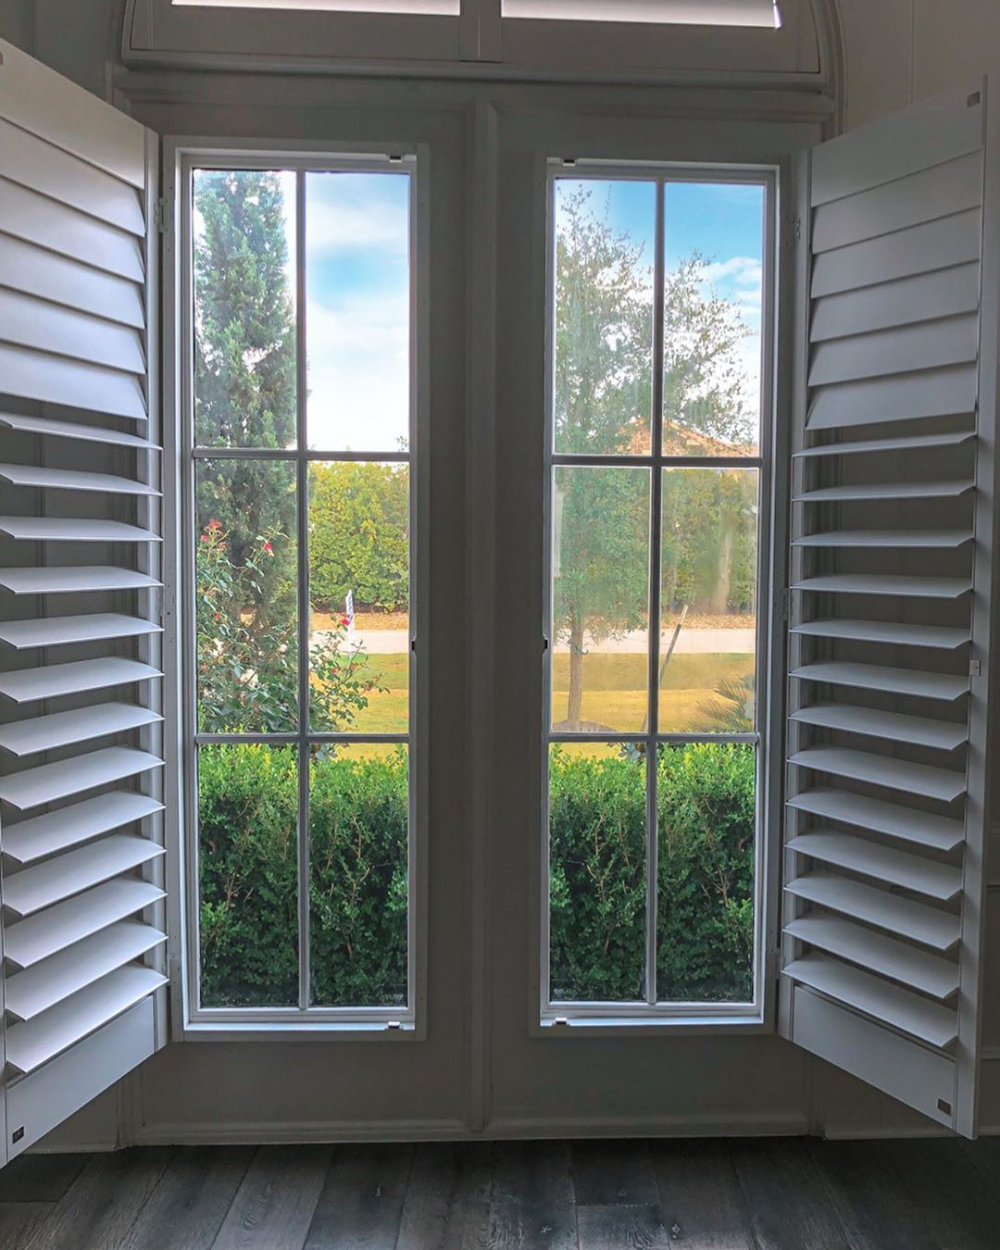 Foggy Home Office Windows Got An Upgrade The Glass Experts Ames Glass Instagram Photos And Videos In 2020 Window Design Windows Exterior Windows